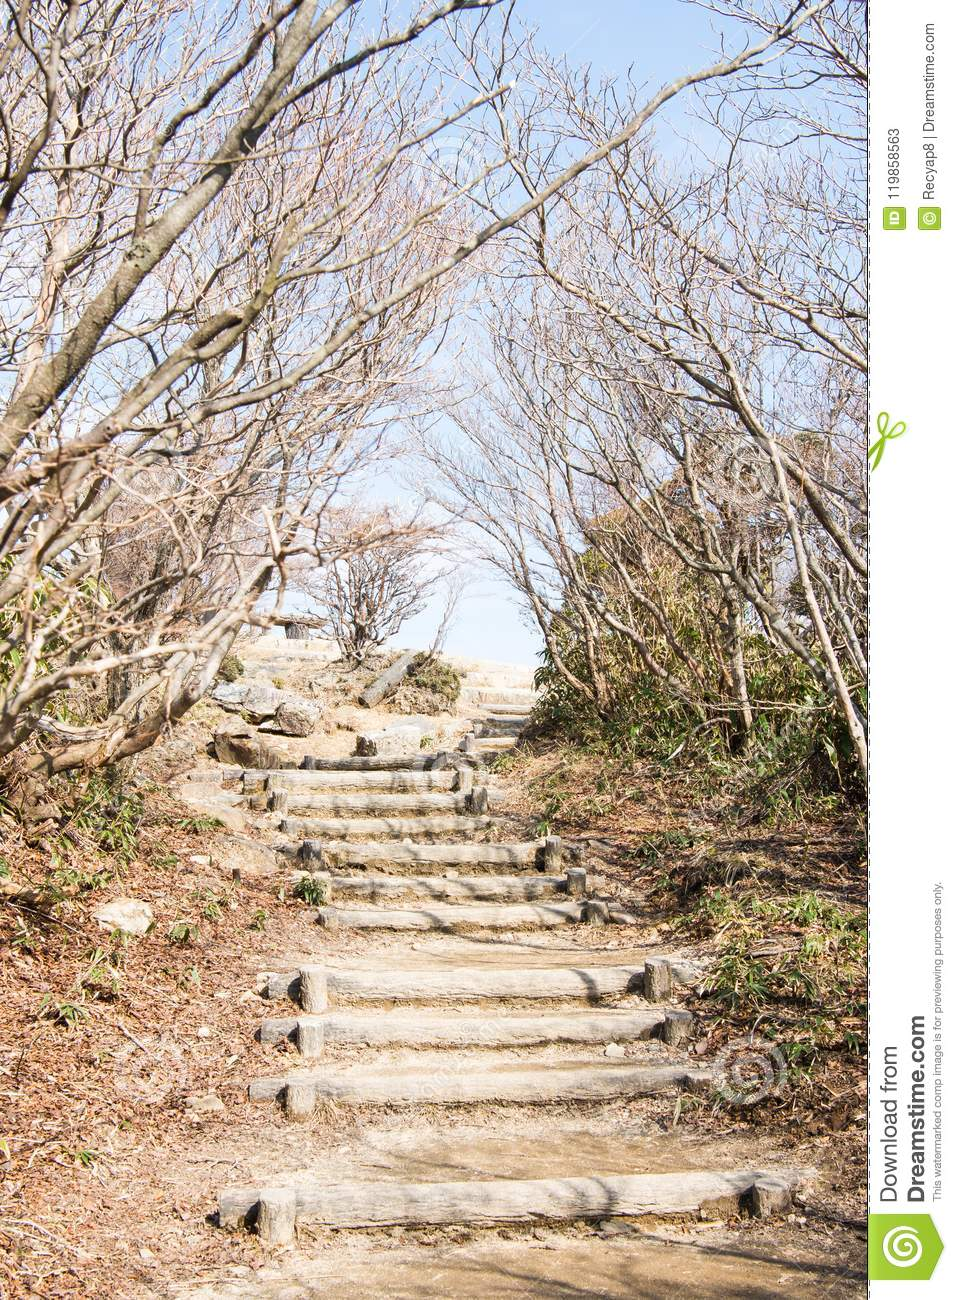 Steep stairs stock image  Image of penol, pathway, street